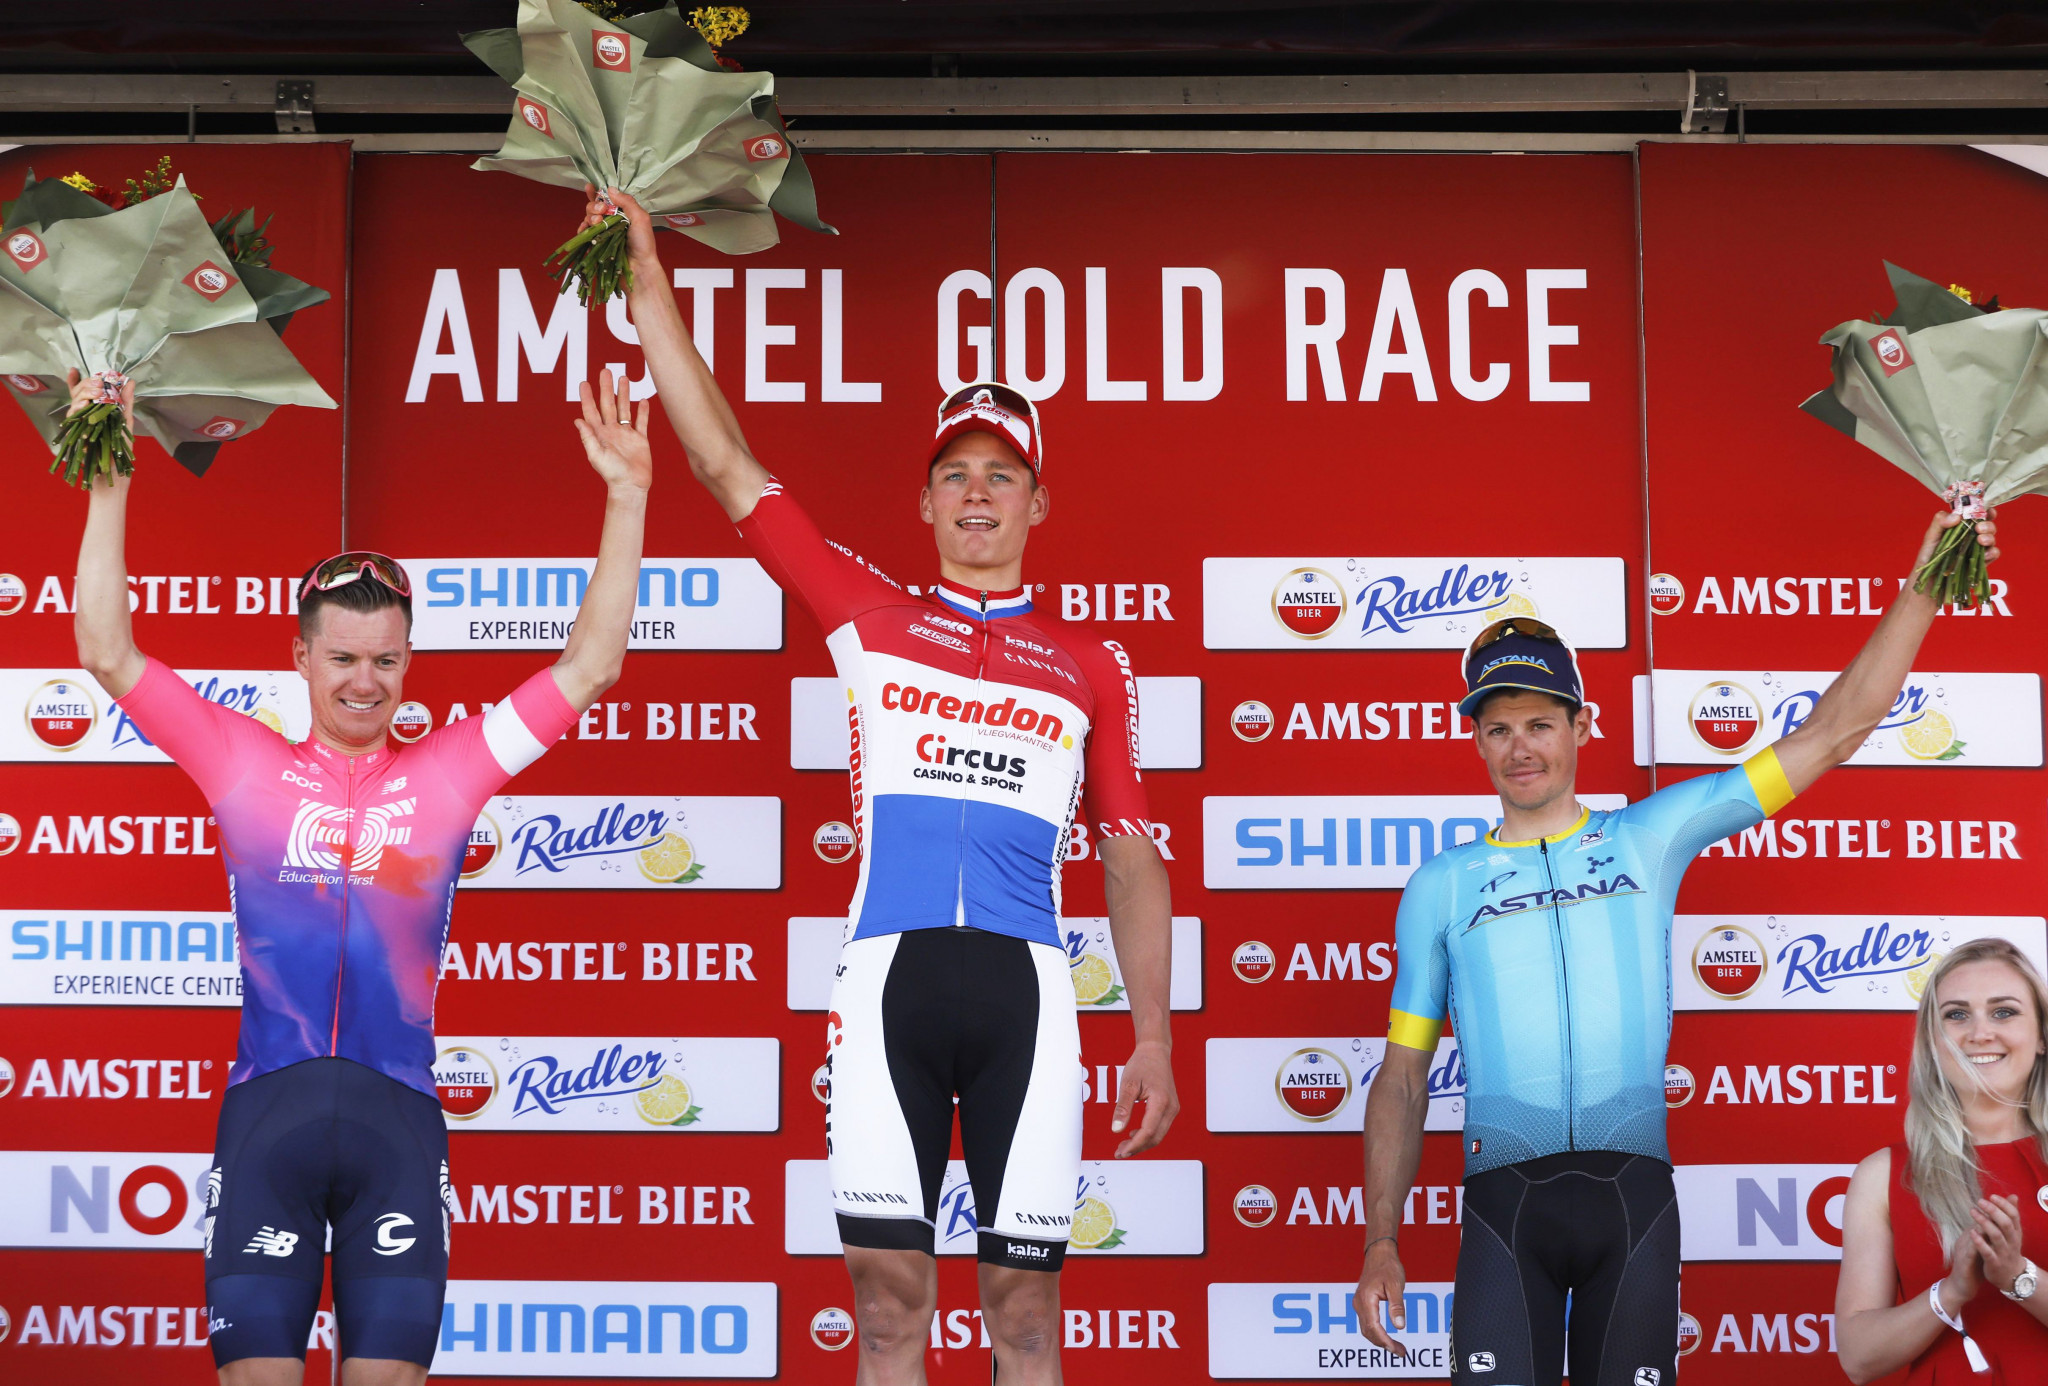 Mathieu Van der Poel celebrated a superb victory at the Amstel Gold Race ©Getty Images